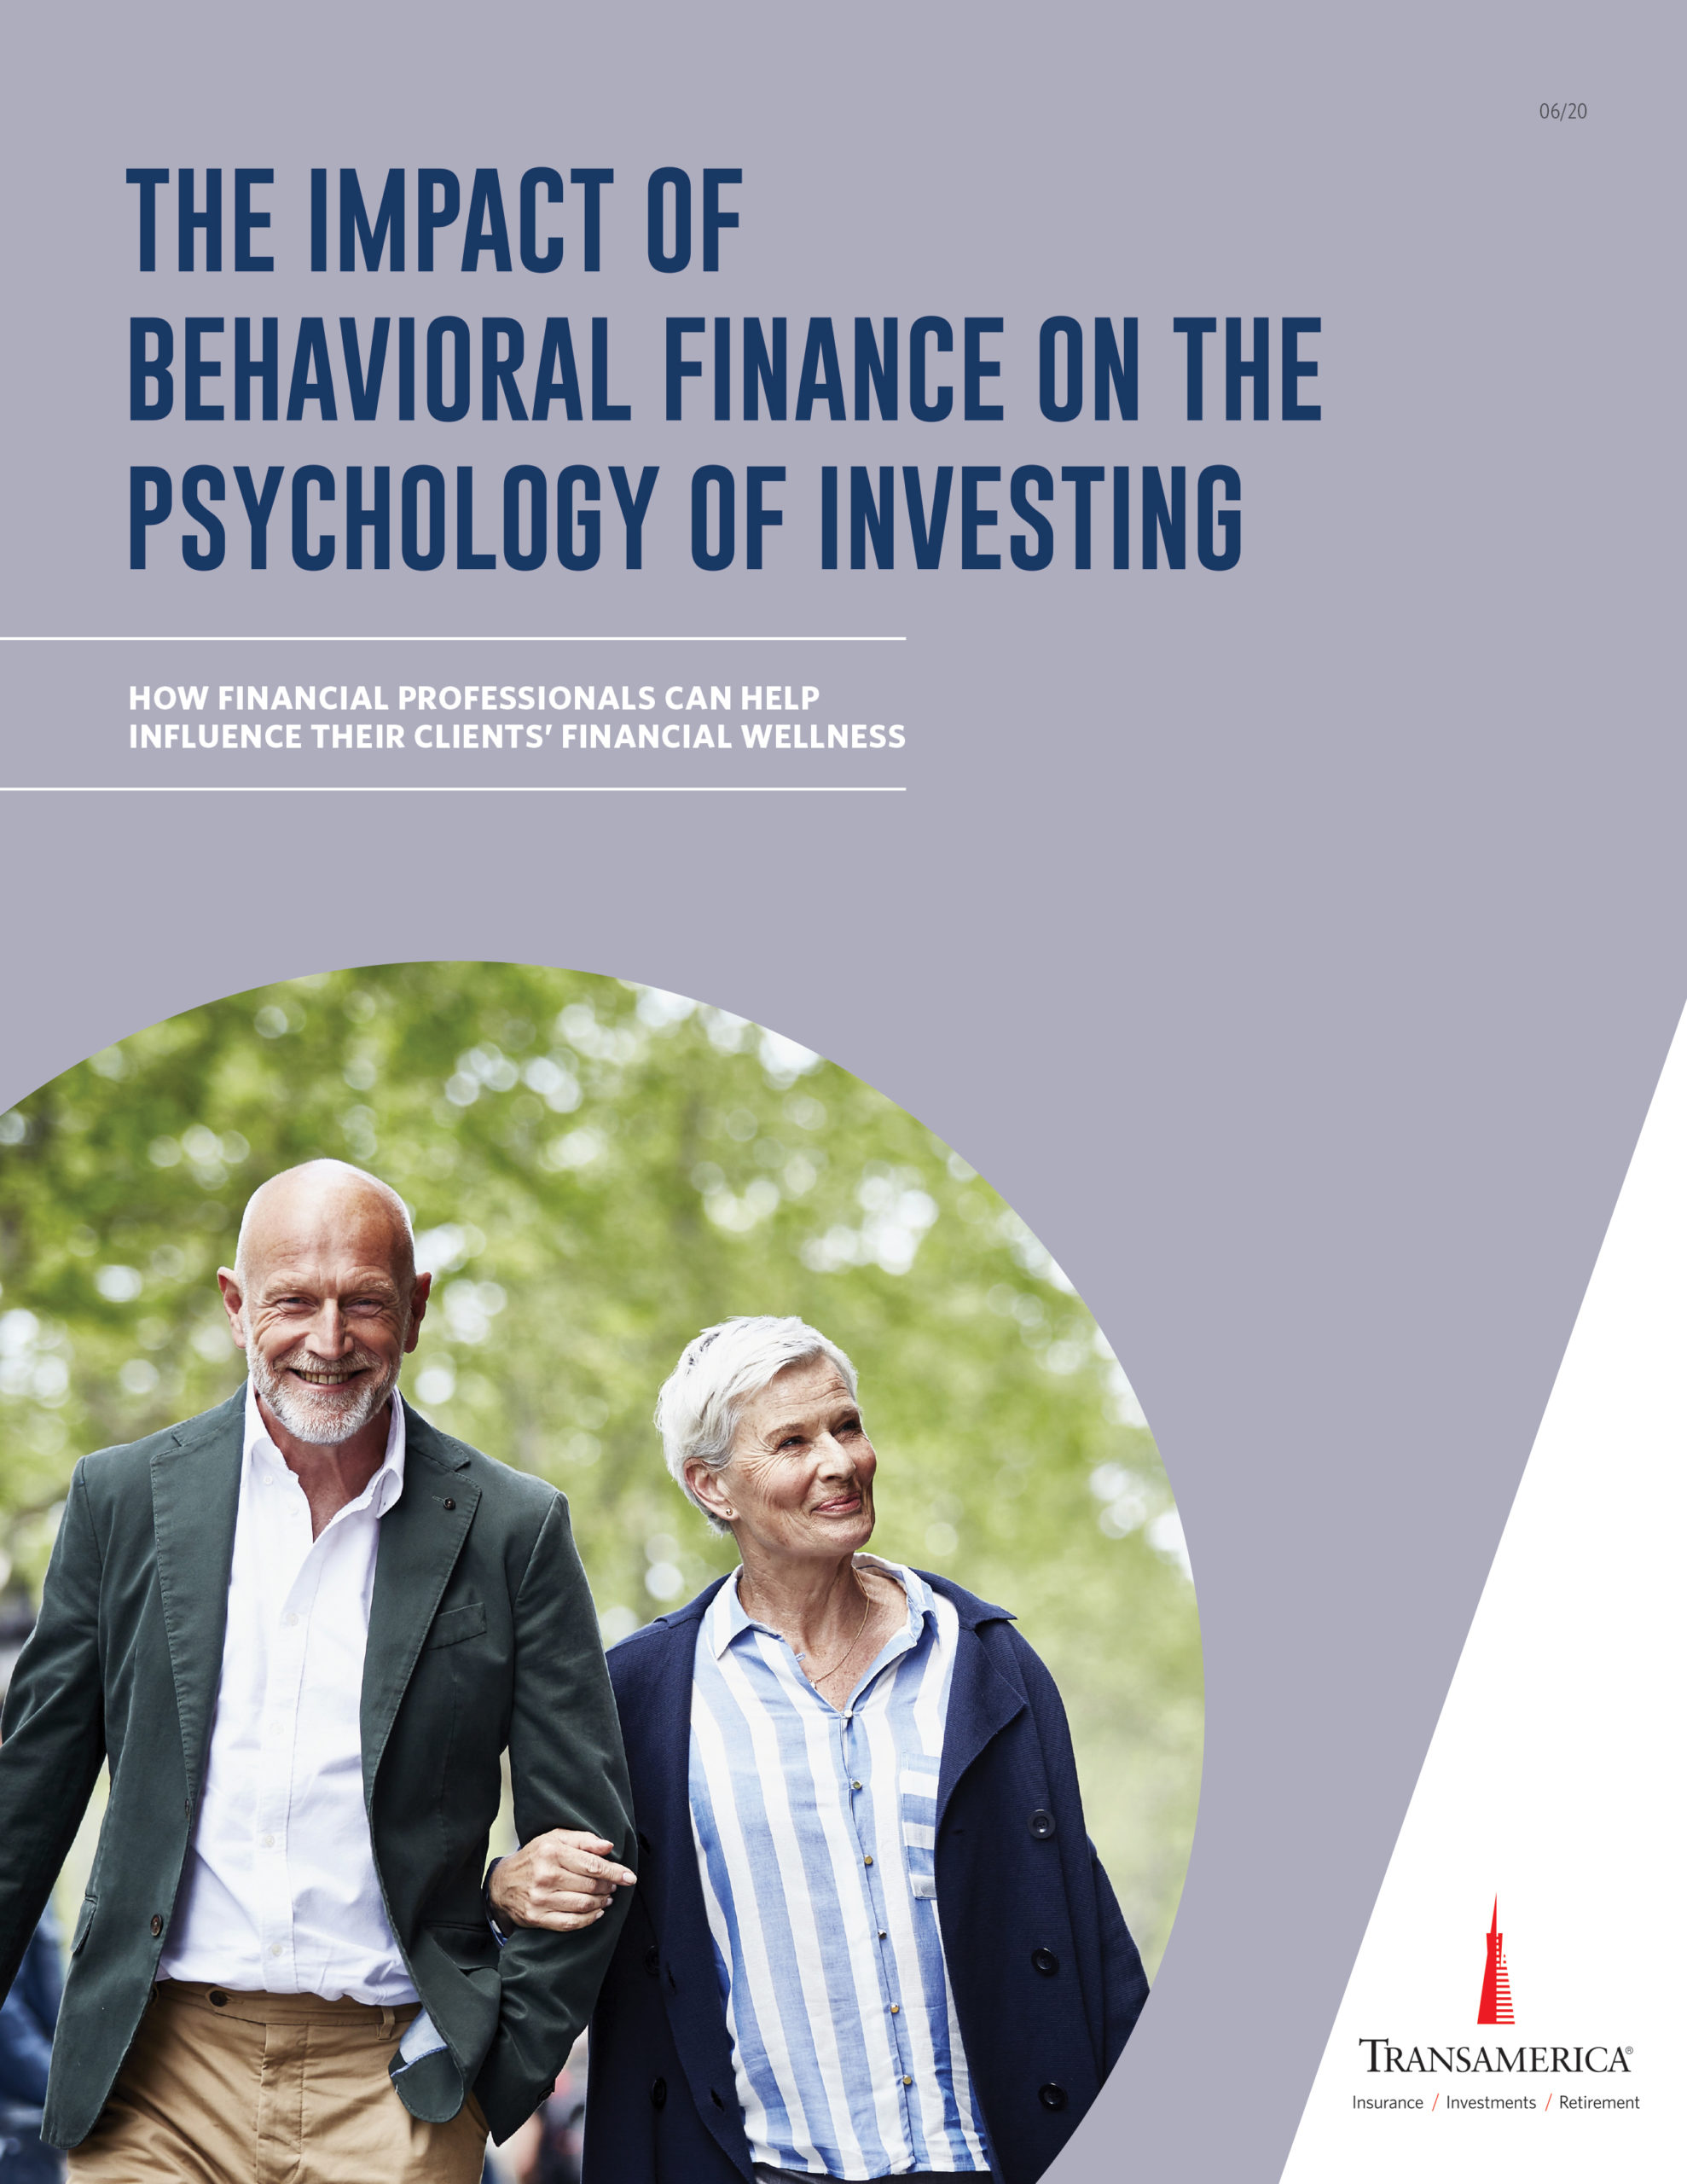 The Impact of Behavioral Finance on the Psychology of Investing